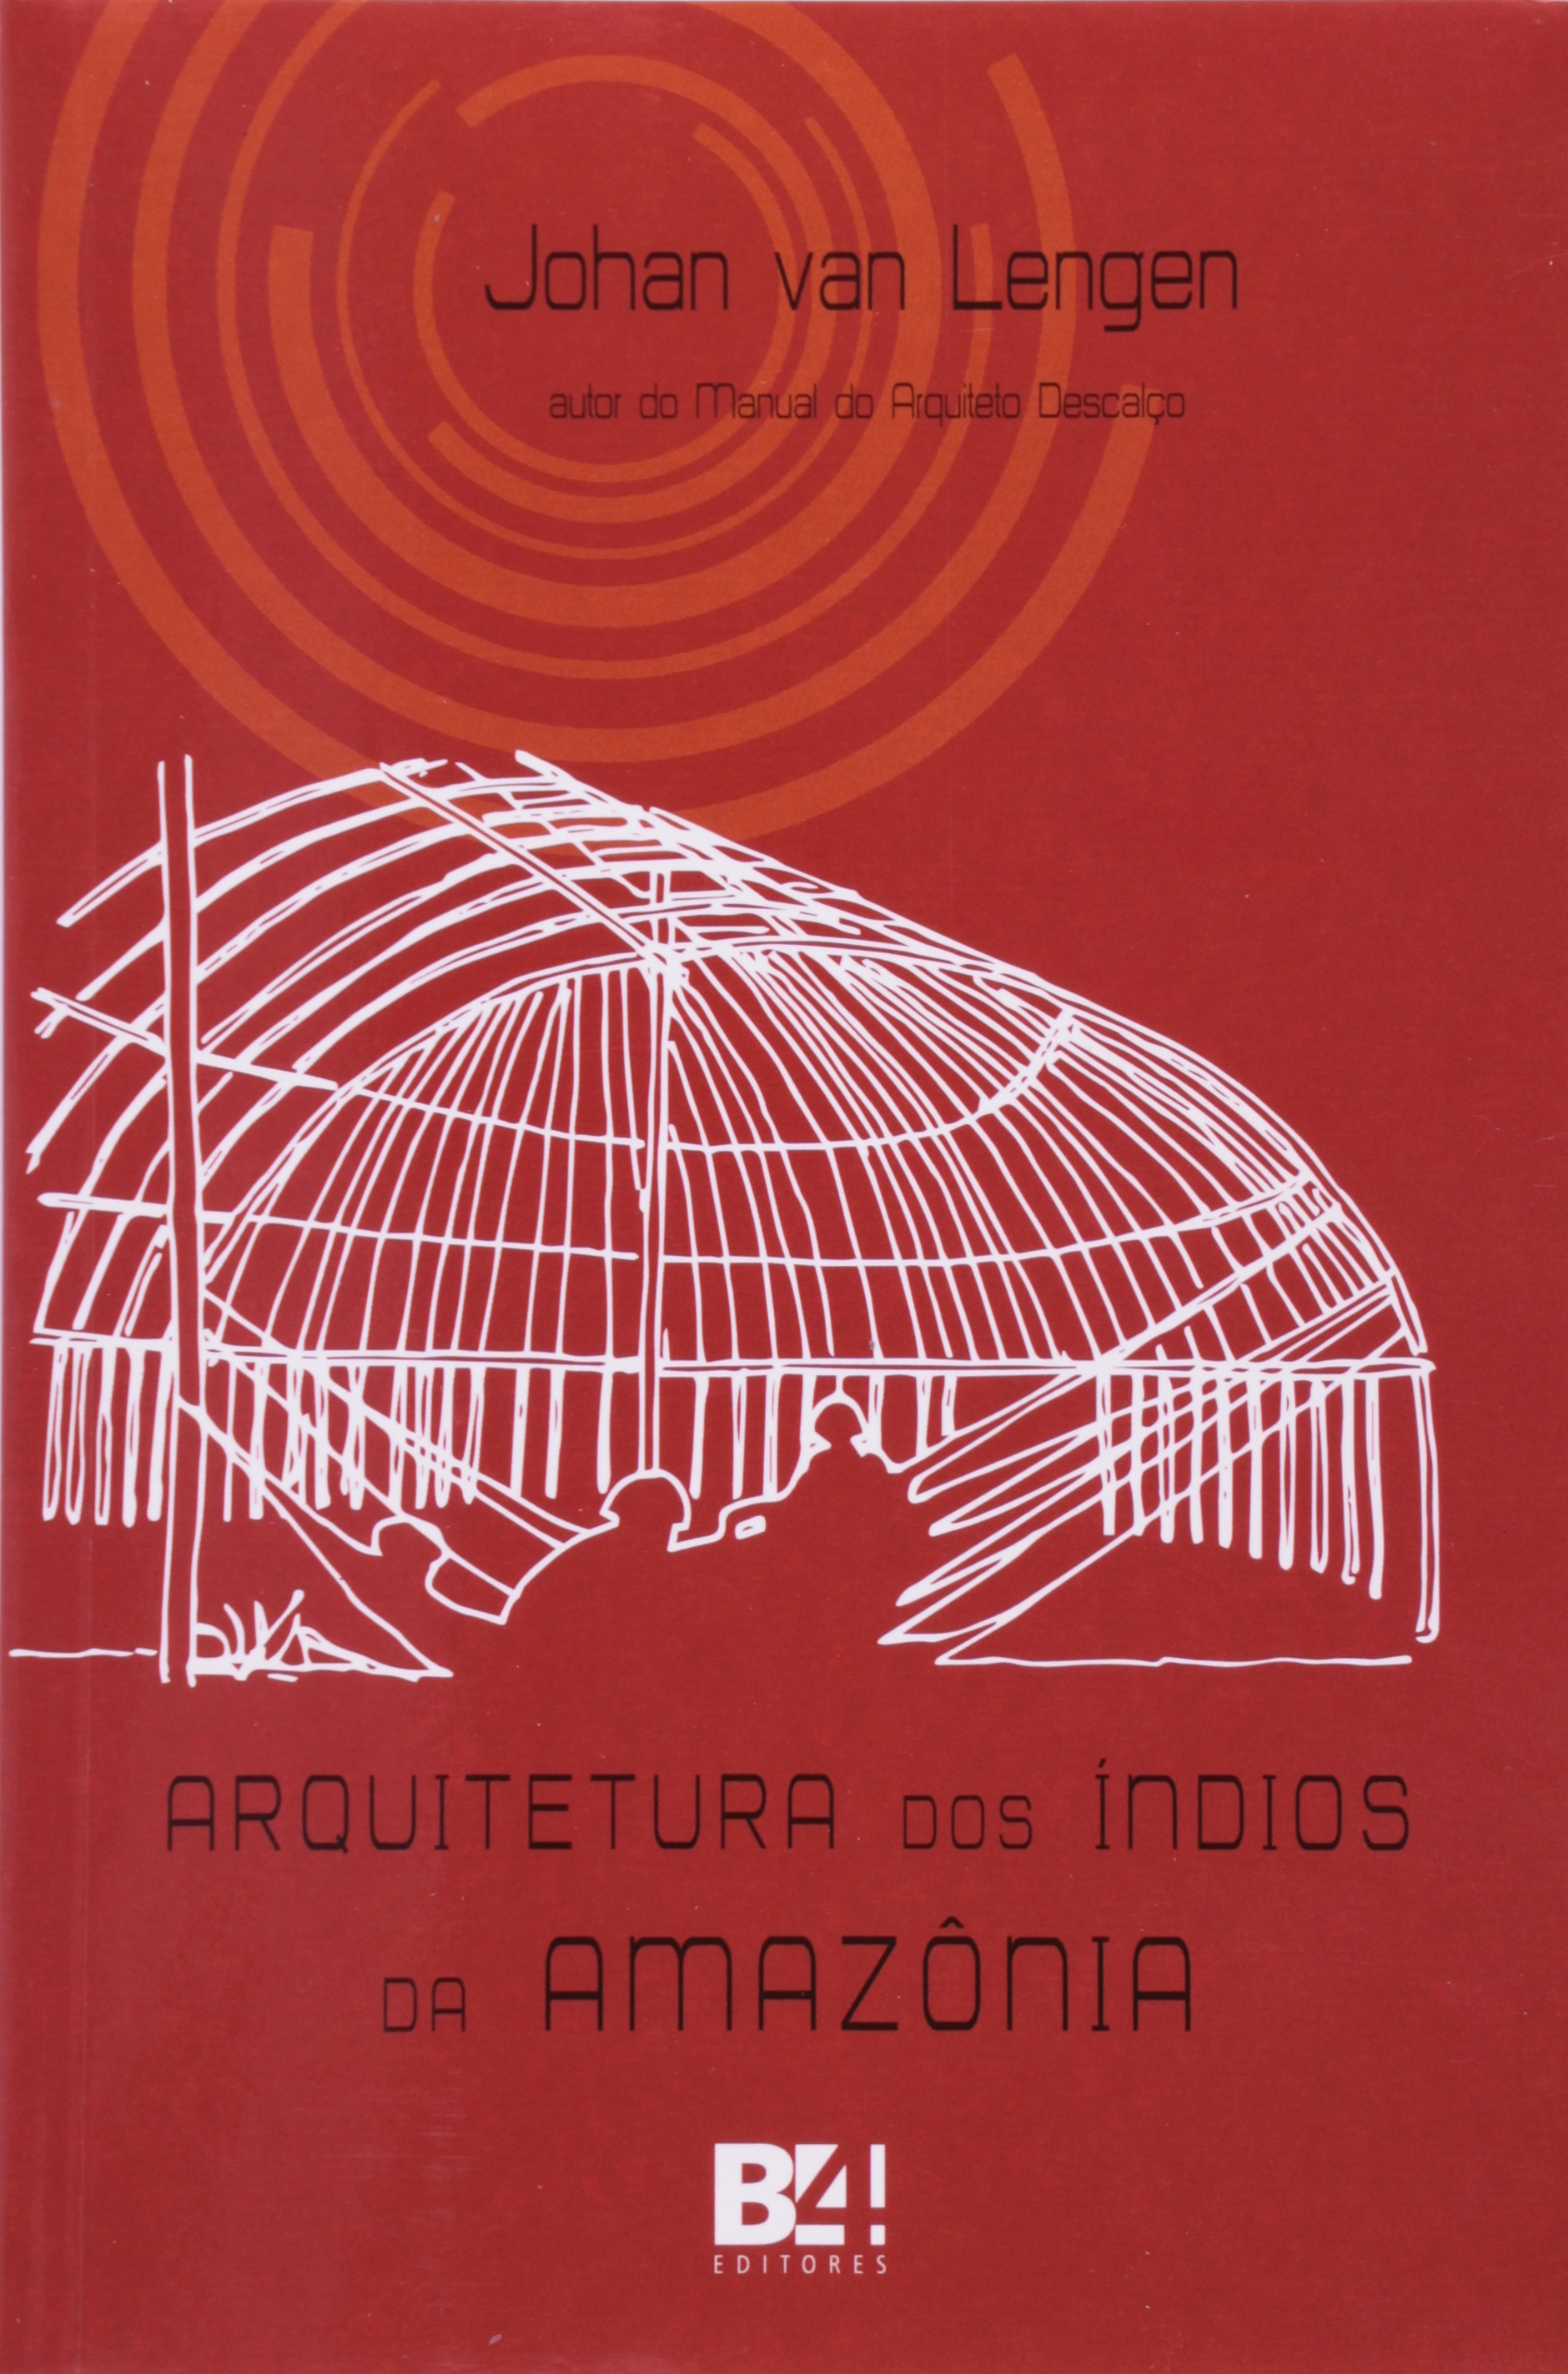 Manual Do Arquiteto Descalco Pdf Gratis